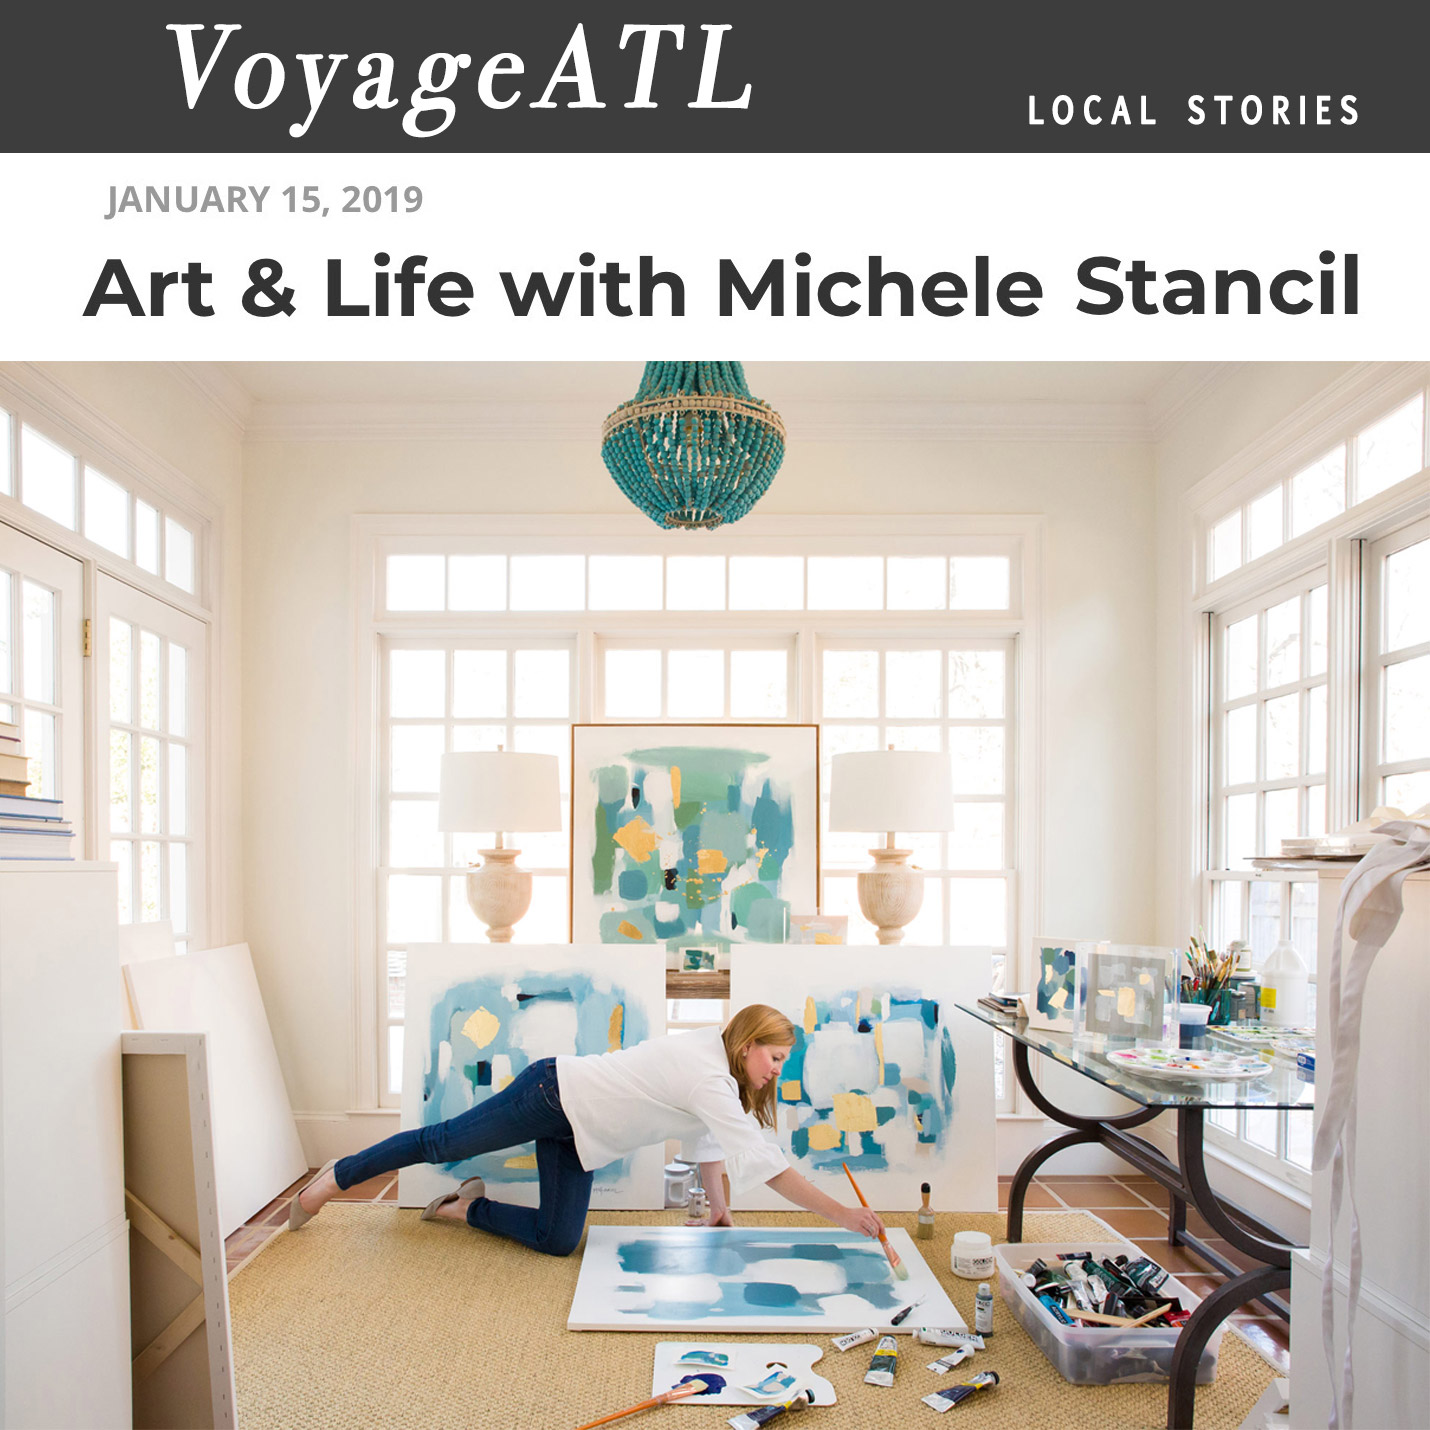 Lacey-Sombar-Curtis-Photography-Michele-Stancil-Fine-Art-Voyage-ATL-web.jpg